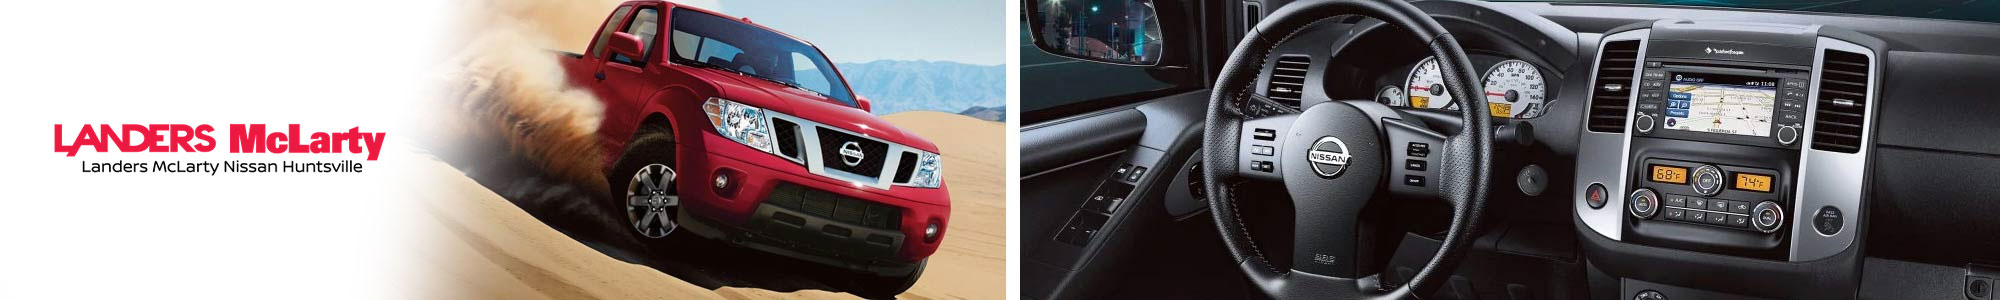 Our Alabama Nissan Dealer Has The Powerful and Capable 2020 Frontier